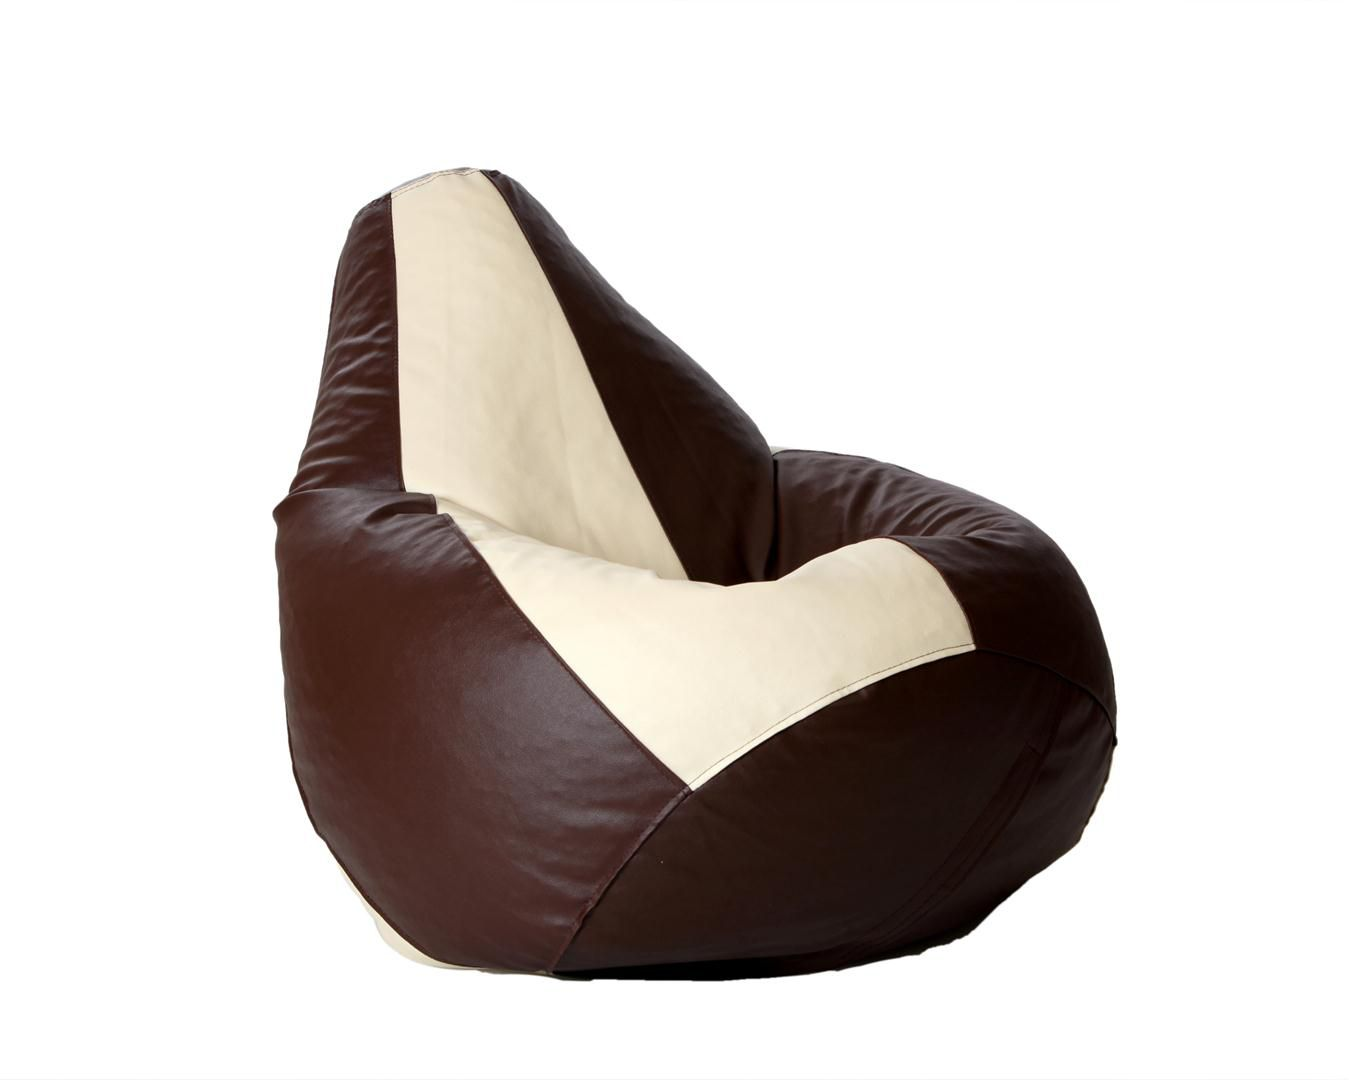 Comfy XL Bean bag with Beans in Brown and Beige